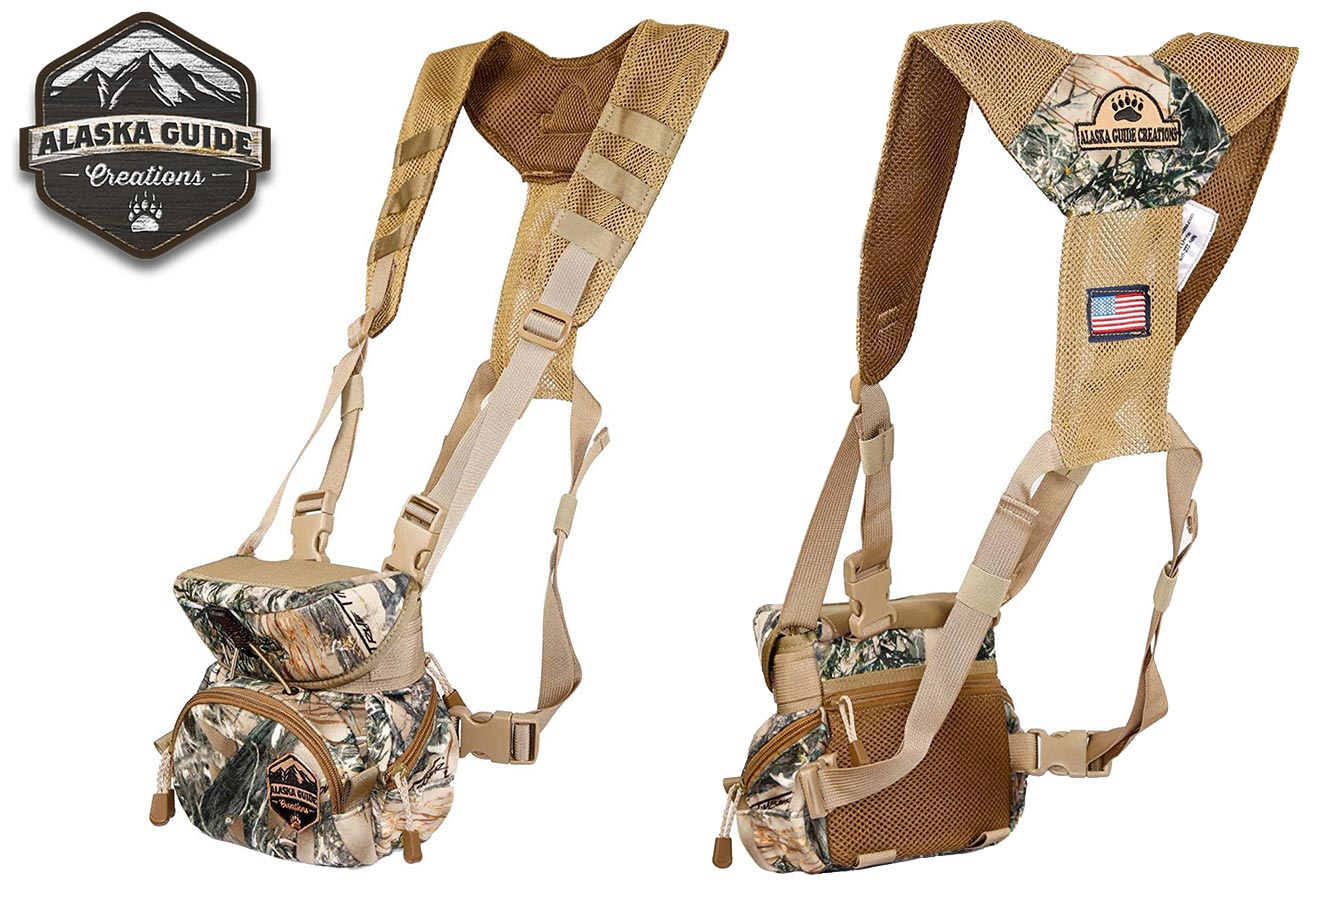 Alaska Guide Creations quiet camo binocular case